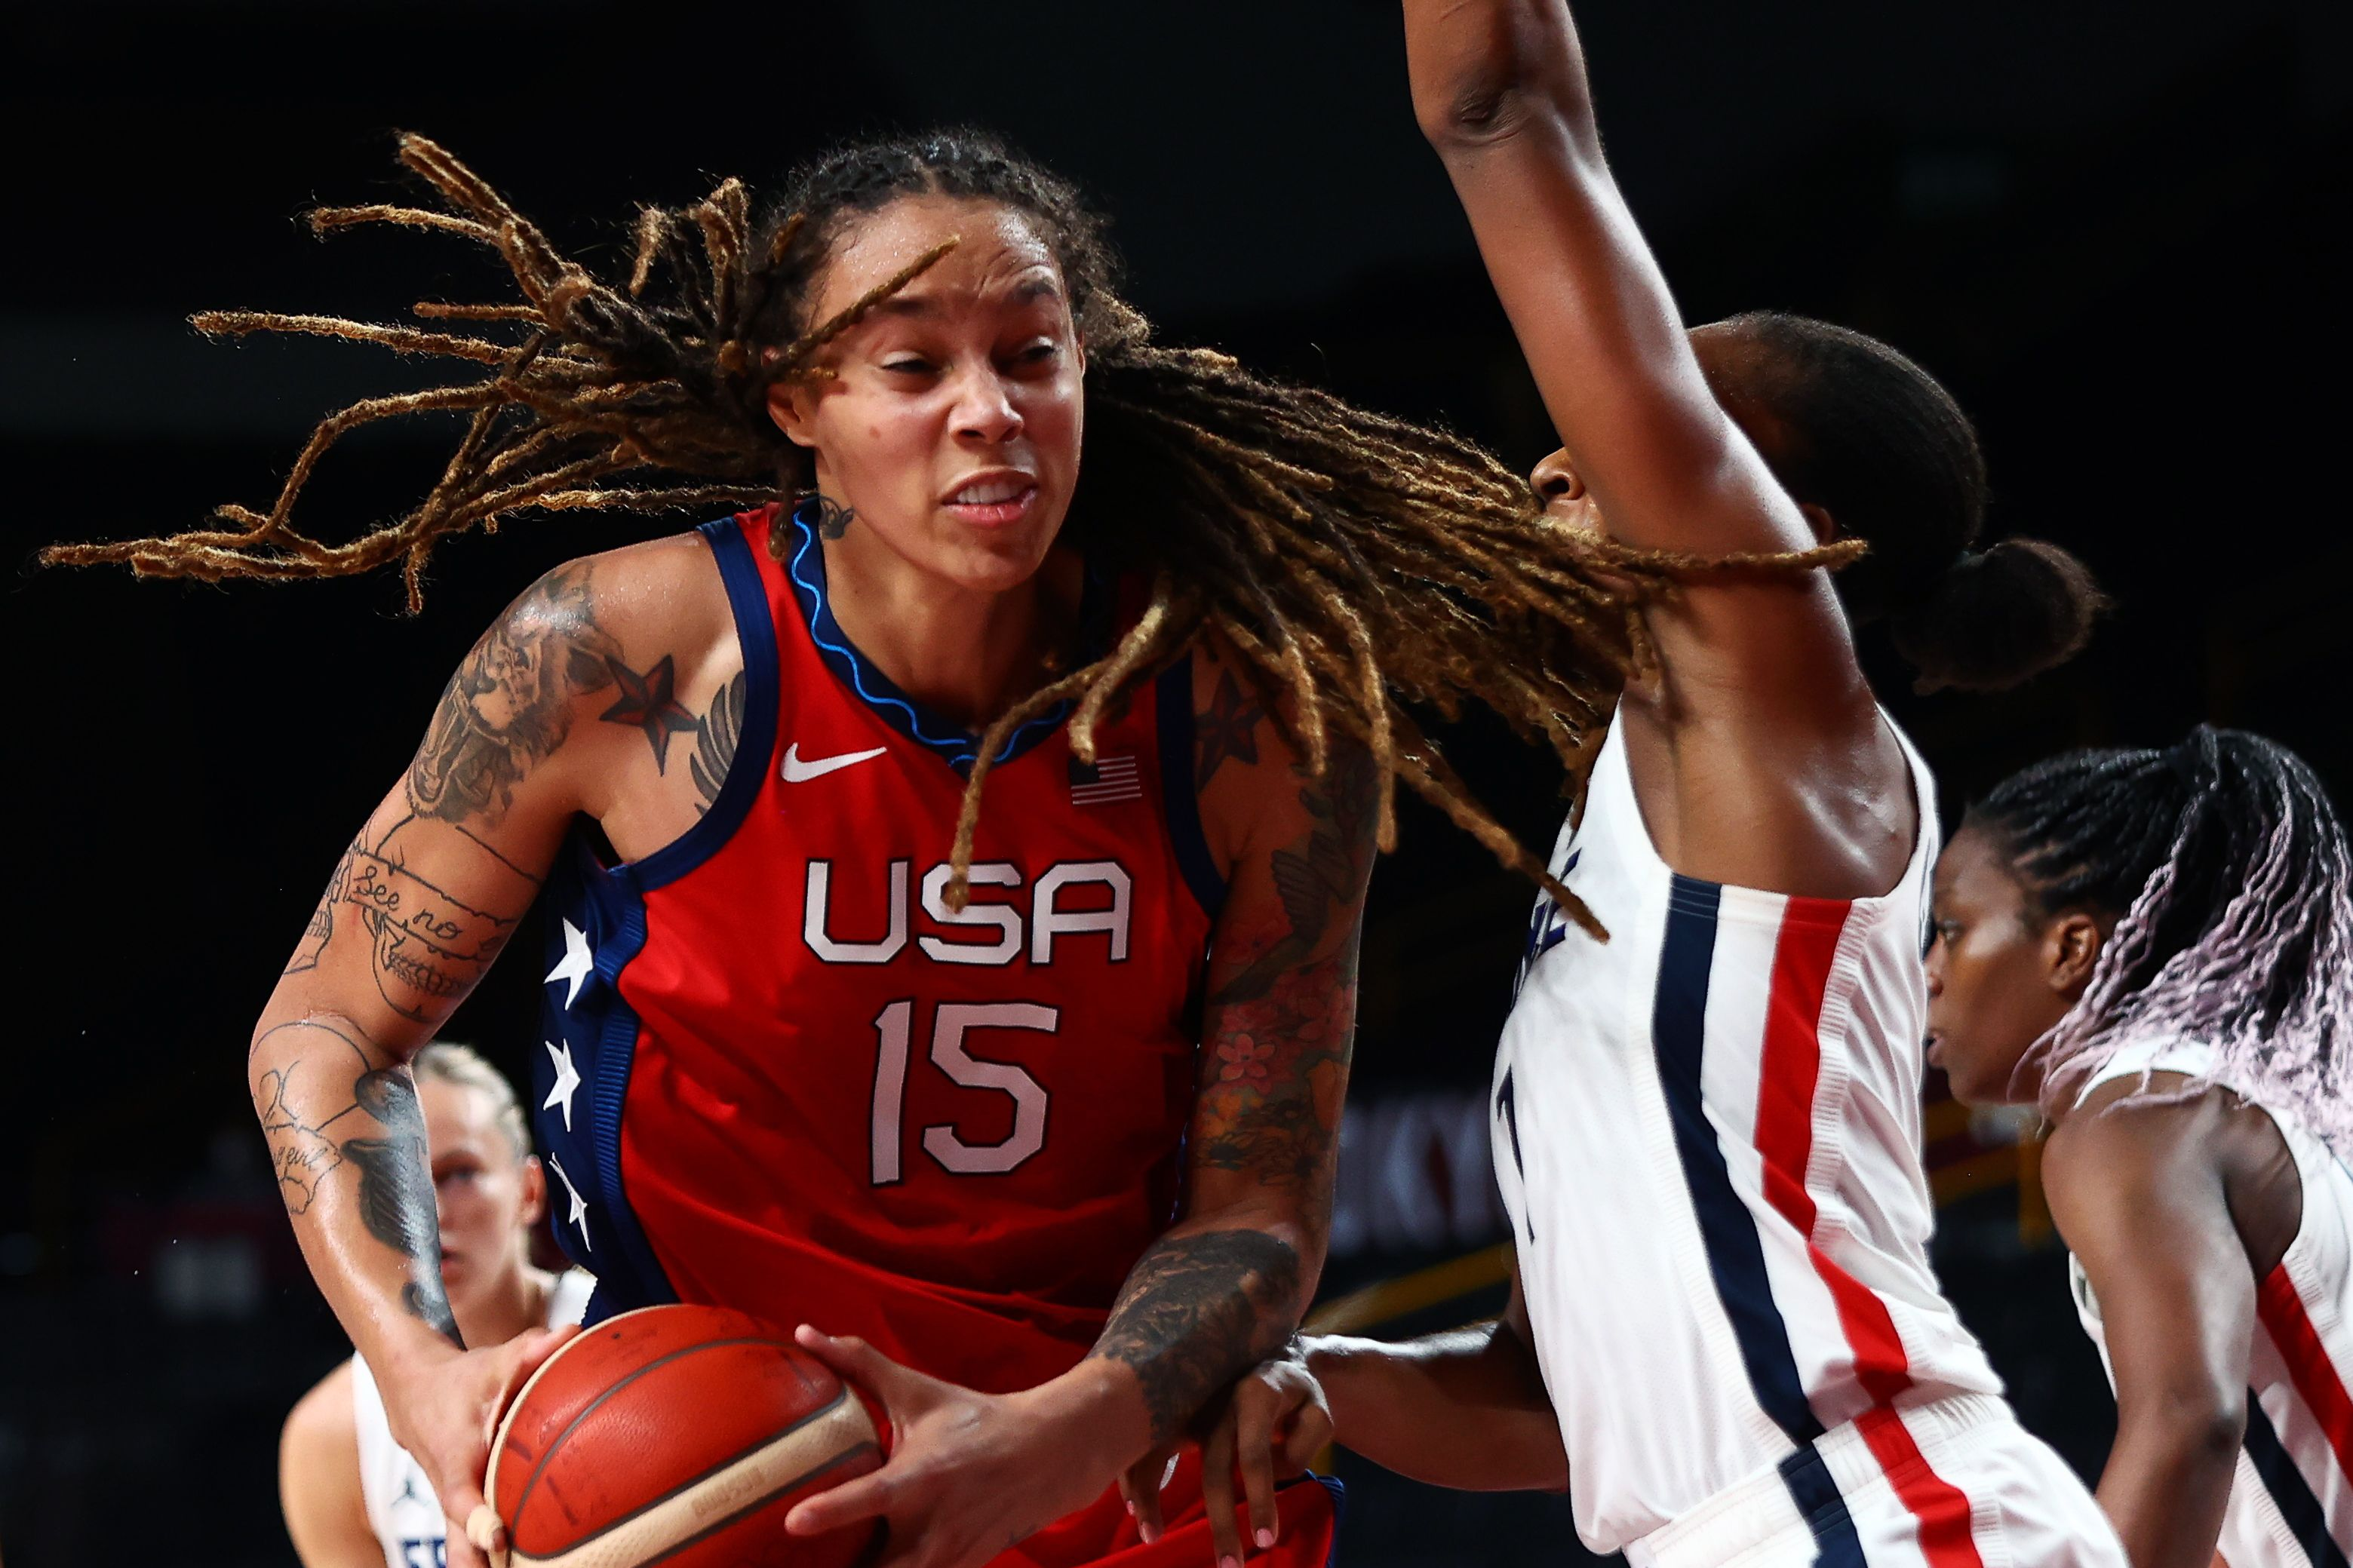 Tokyo 2020 Olympics - Basketball - Women - Group B - France v United States - Saitama Super Arena, Saitama, Japan - August 2, 2021. Brittney Griner of the United States in action with Sandrine Gruda of France REUTERS/Sergio Perez